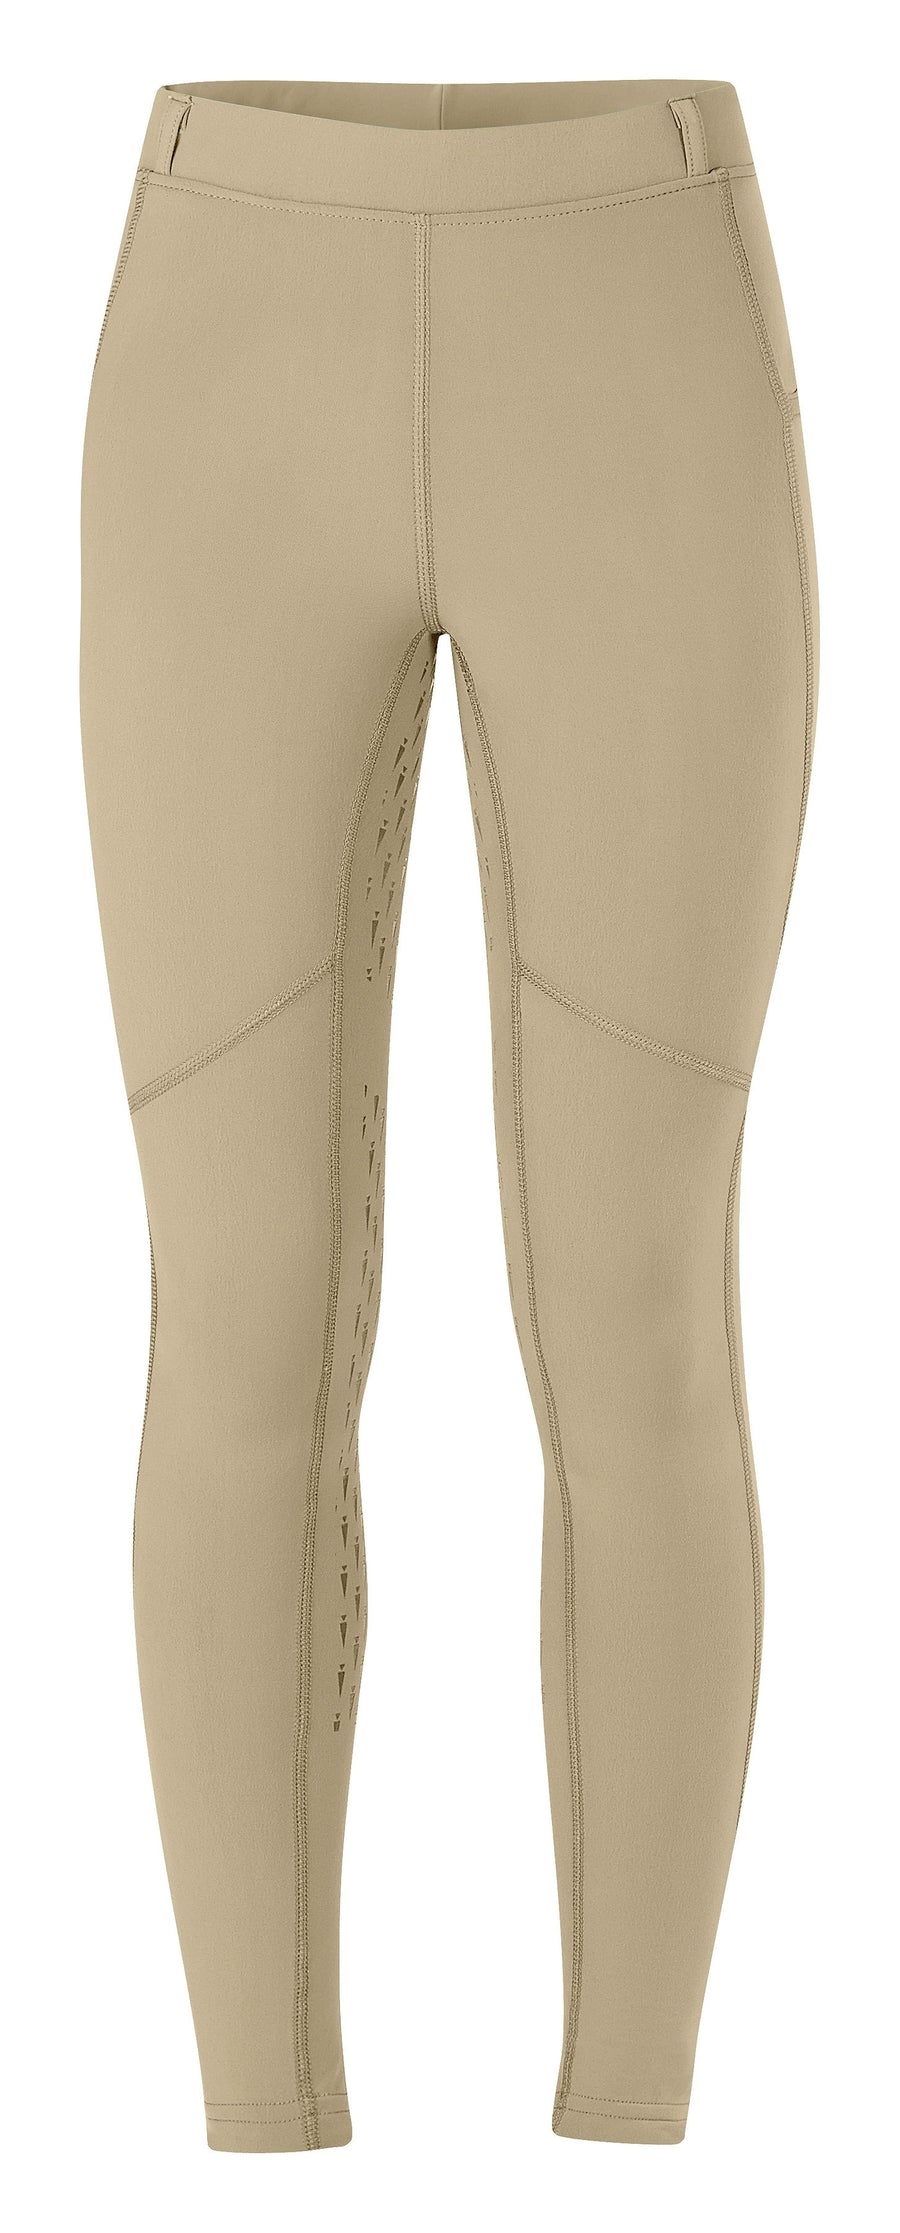 Kids' Ice Fil Tight 2019-Breeches-Kerrits-XS-Tan-Manhattan Saddlery